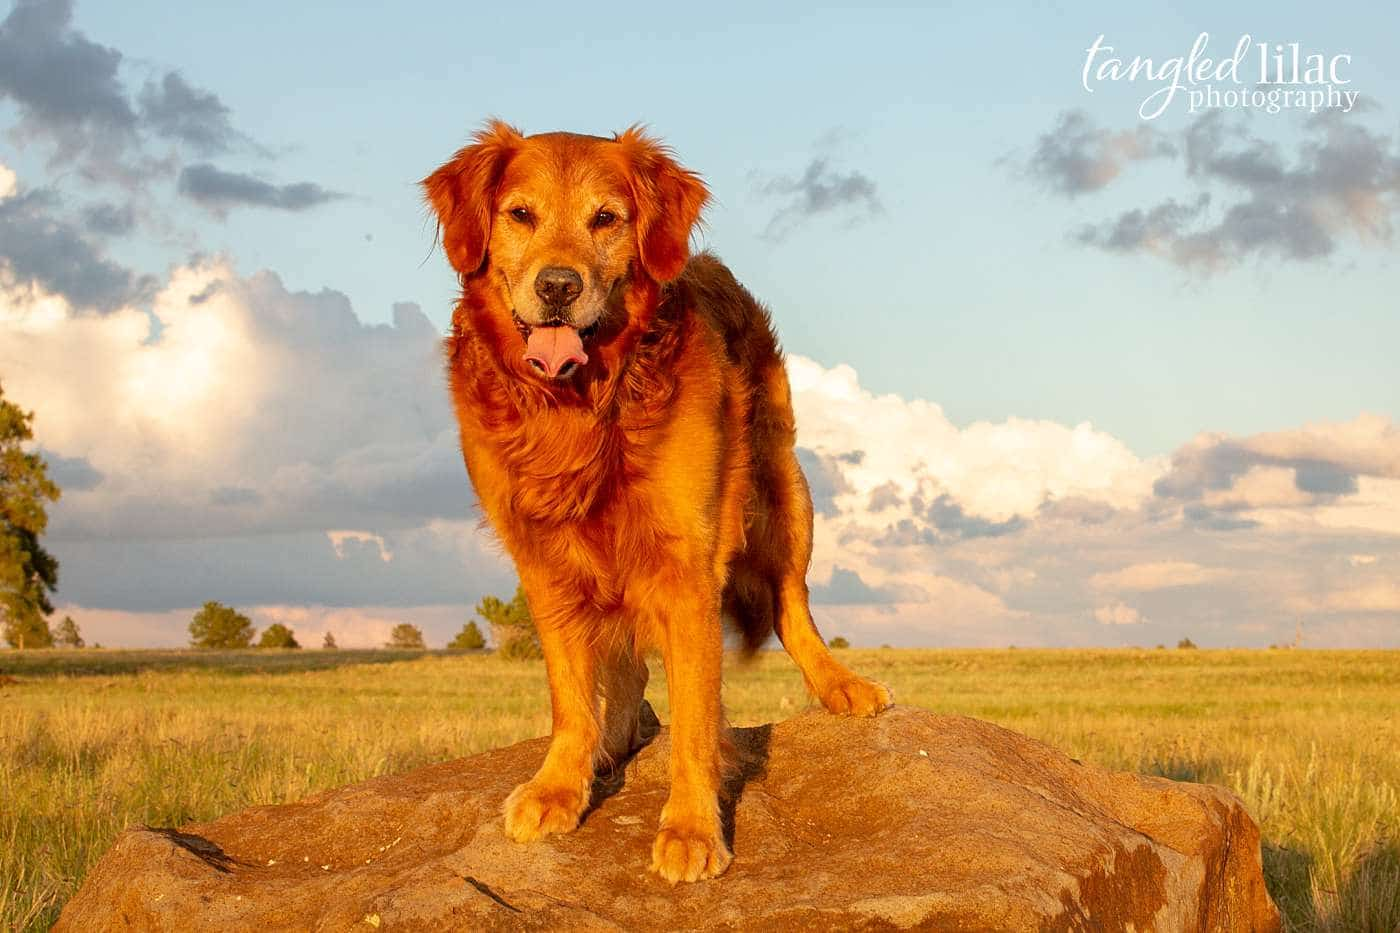 Golden Retriever rescue smiling at the camera during a pet photography session